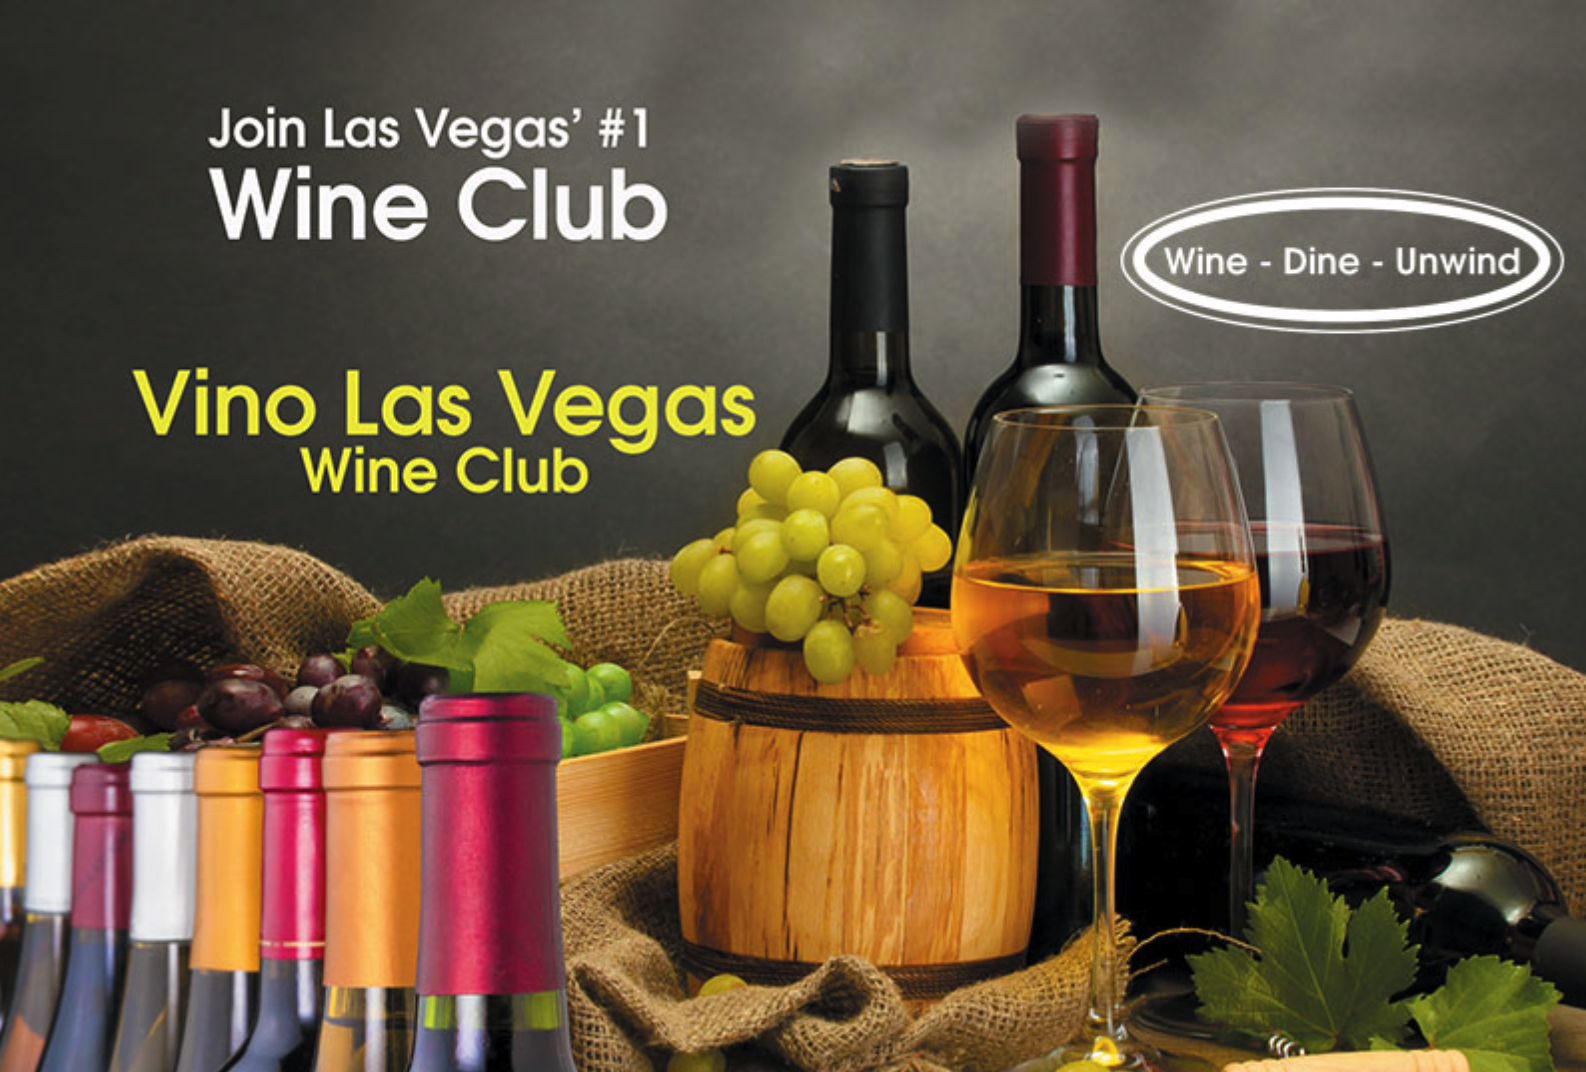 Vino Las Vegas Wine Club Flyer